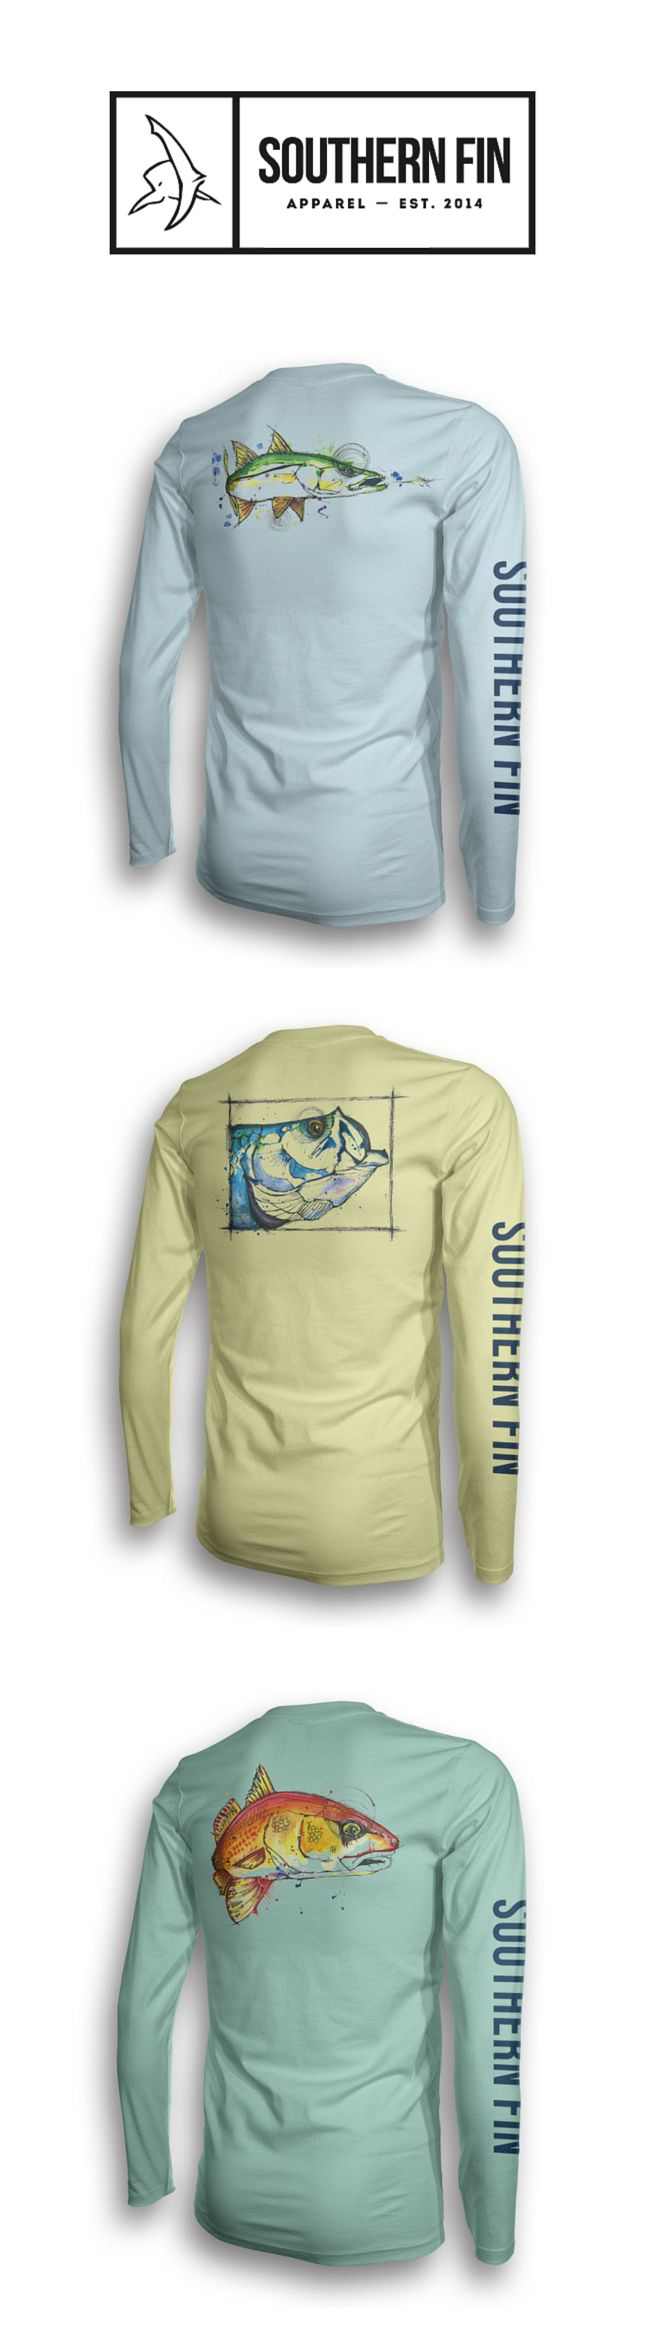 New Inshore series of fishing apparel from Southern Fin. UPF 50+ protection and original artwork.